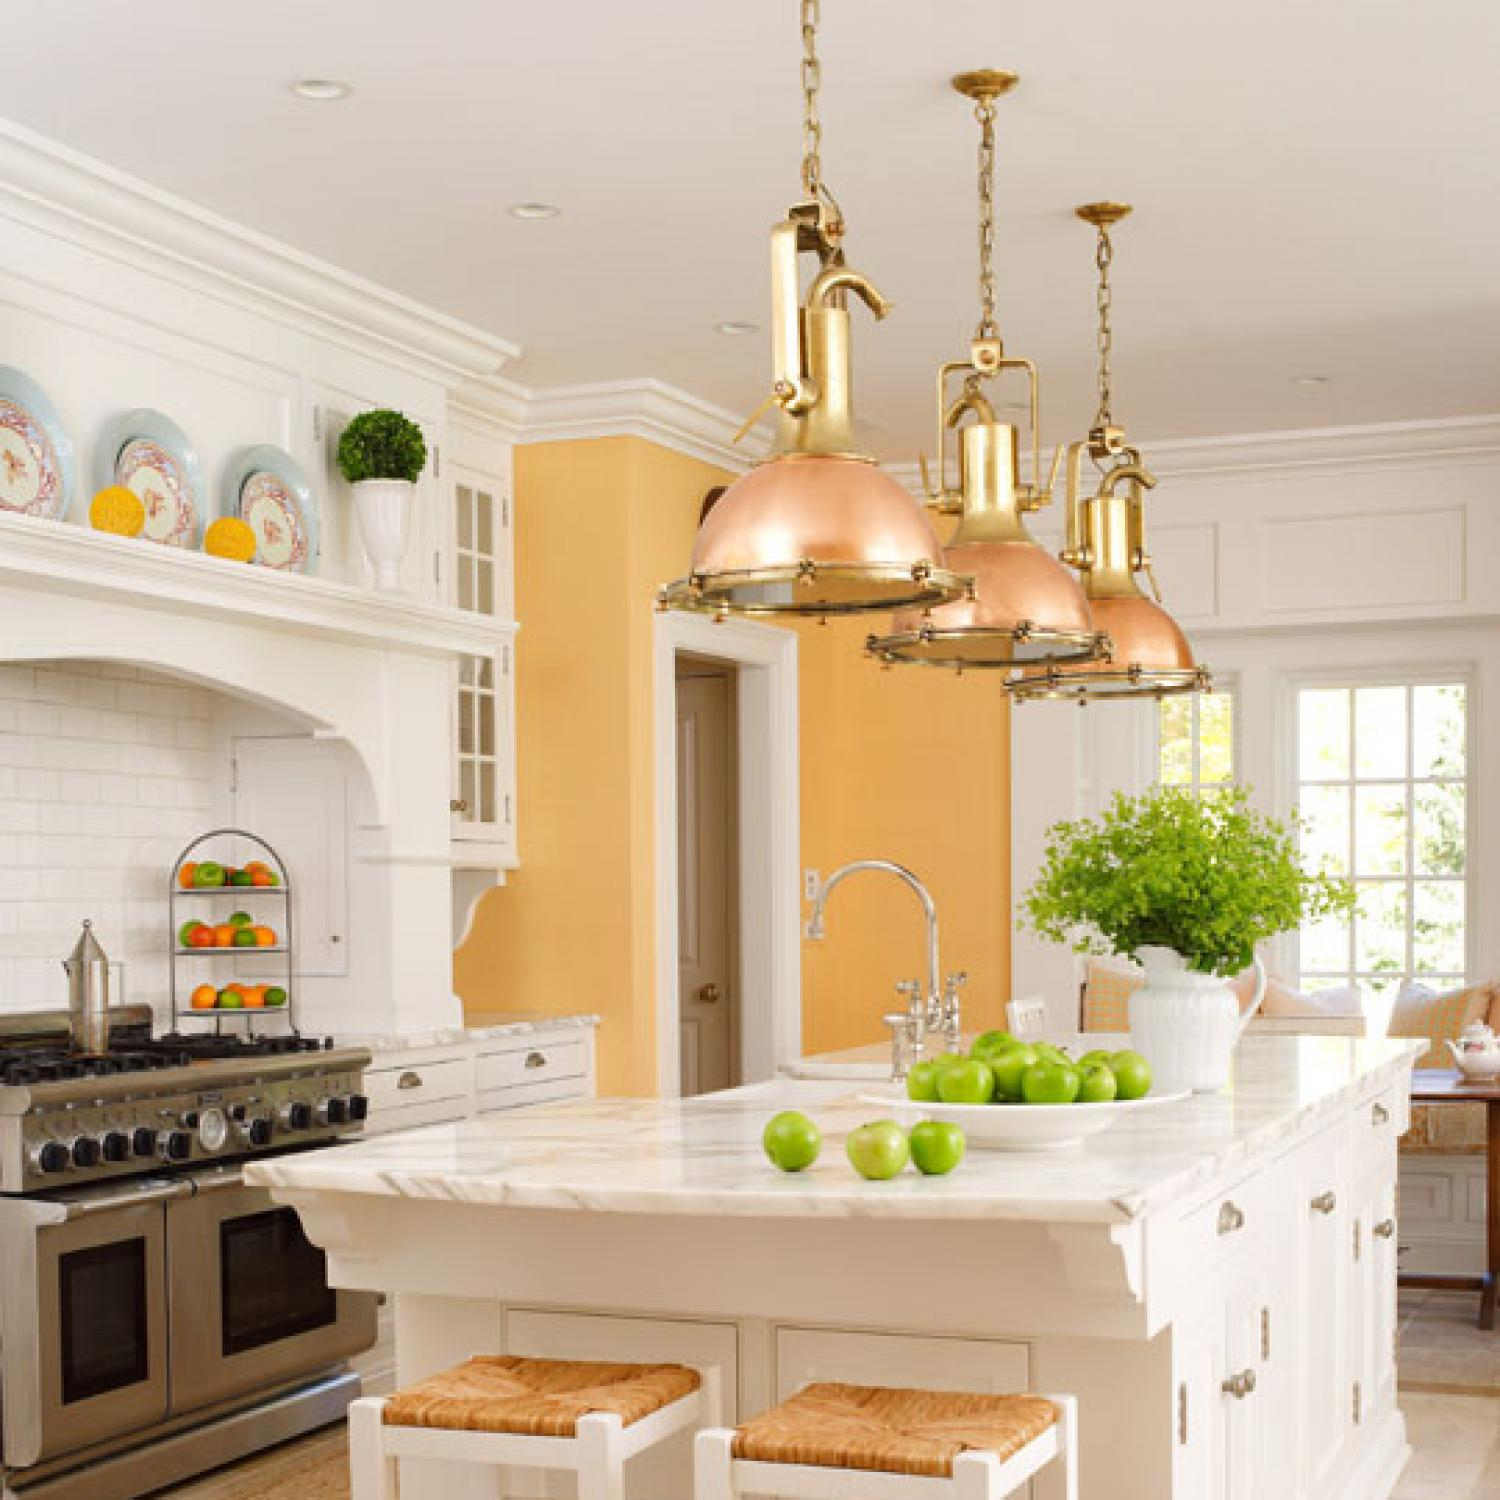 & Kitchen Remodel: Finding Space | Traditional Home azcodes.com